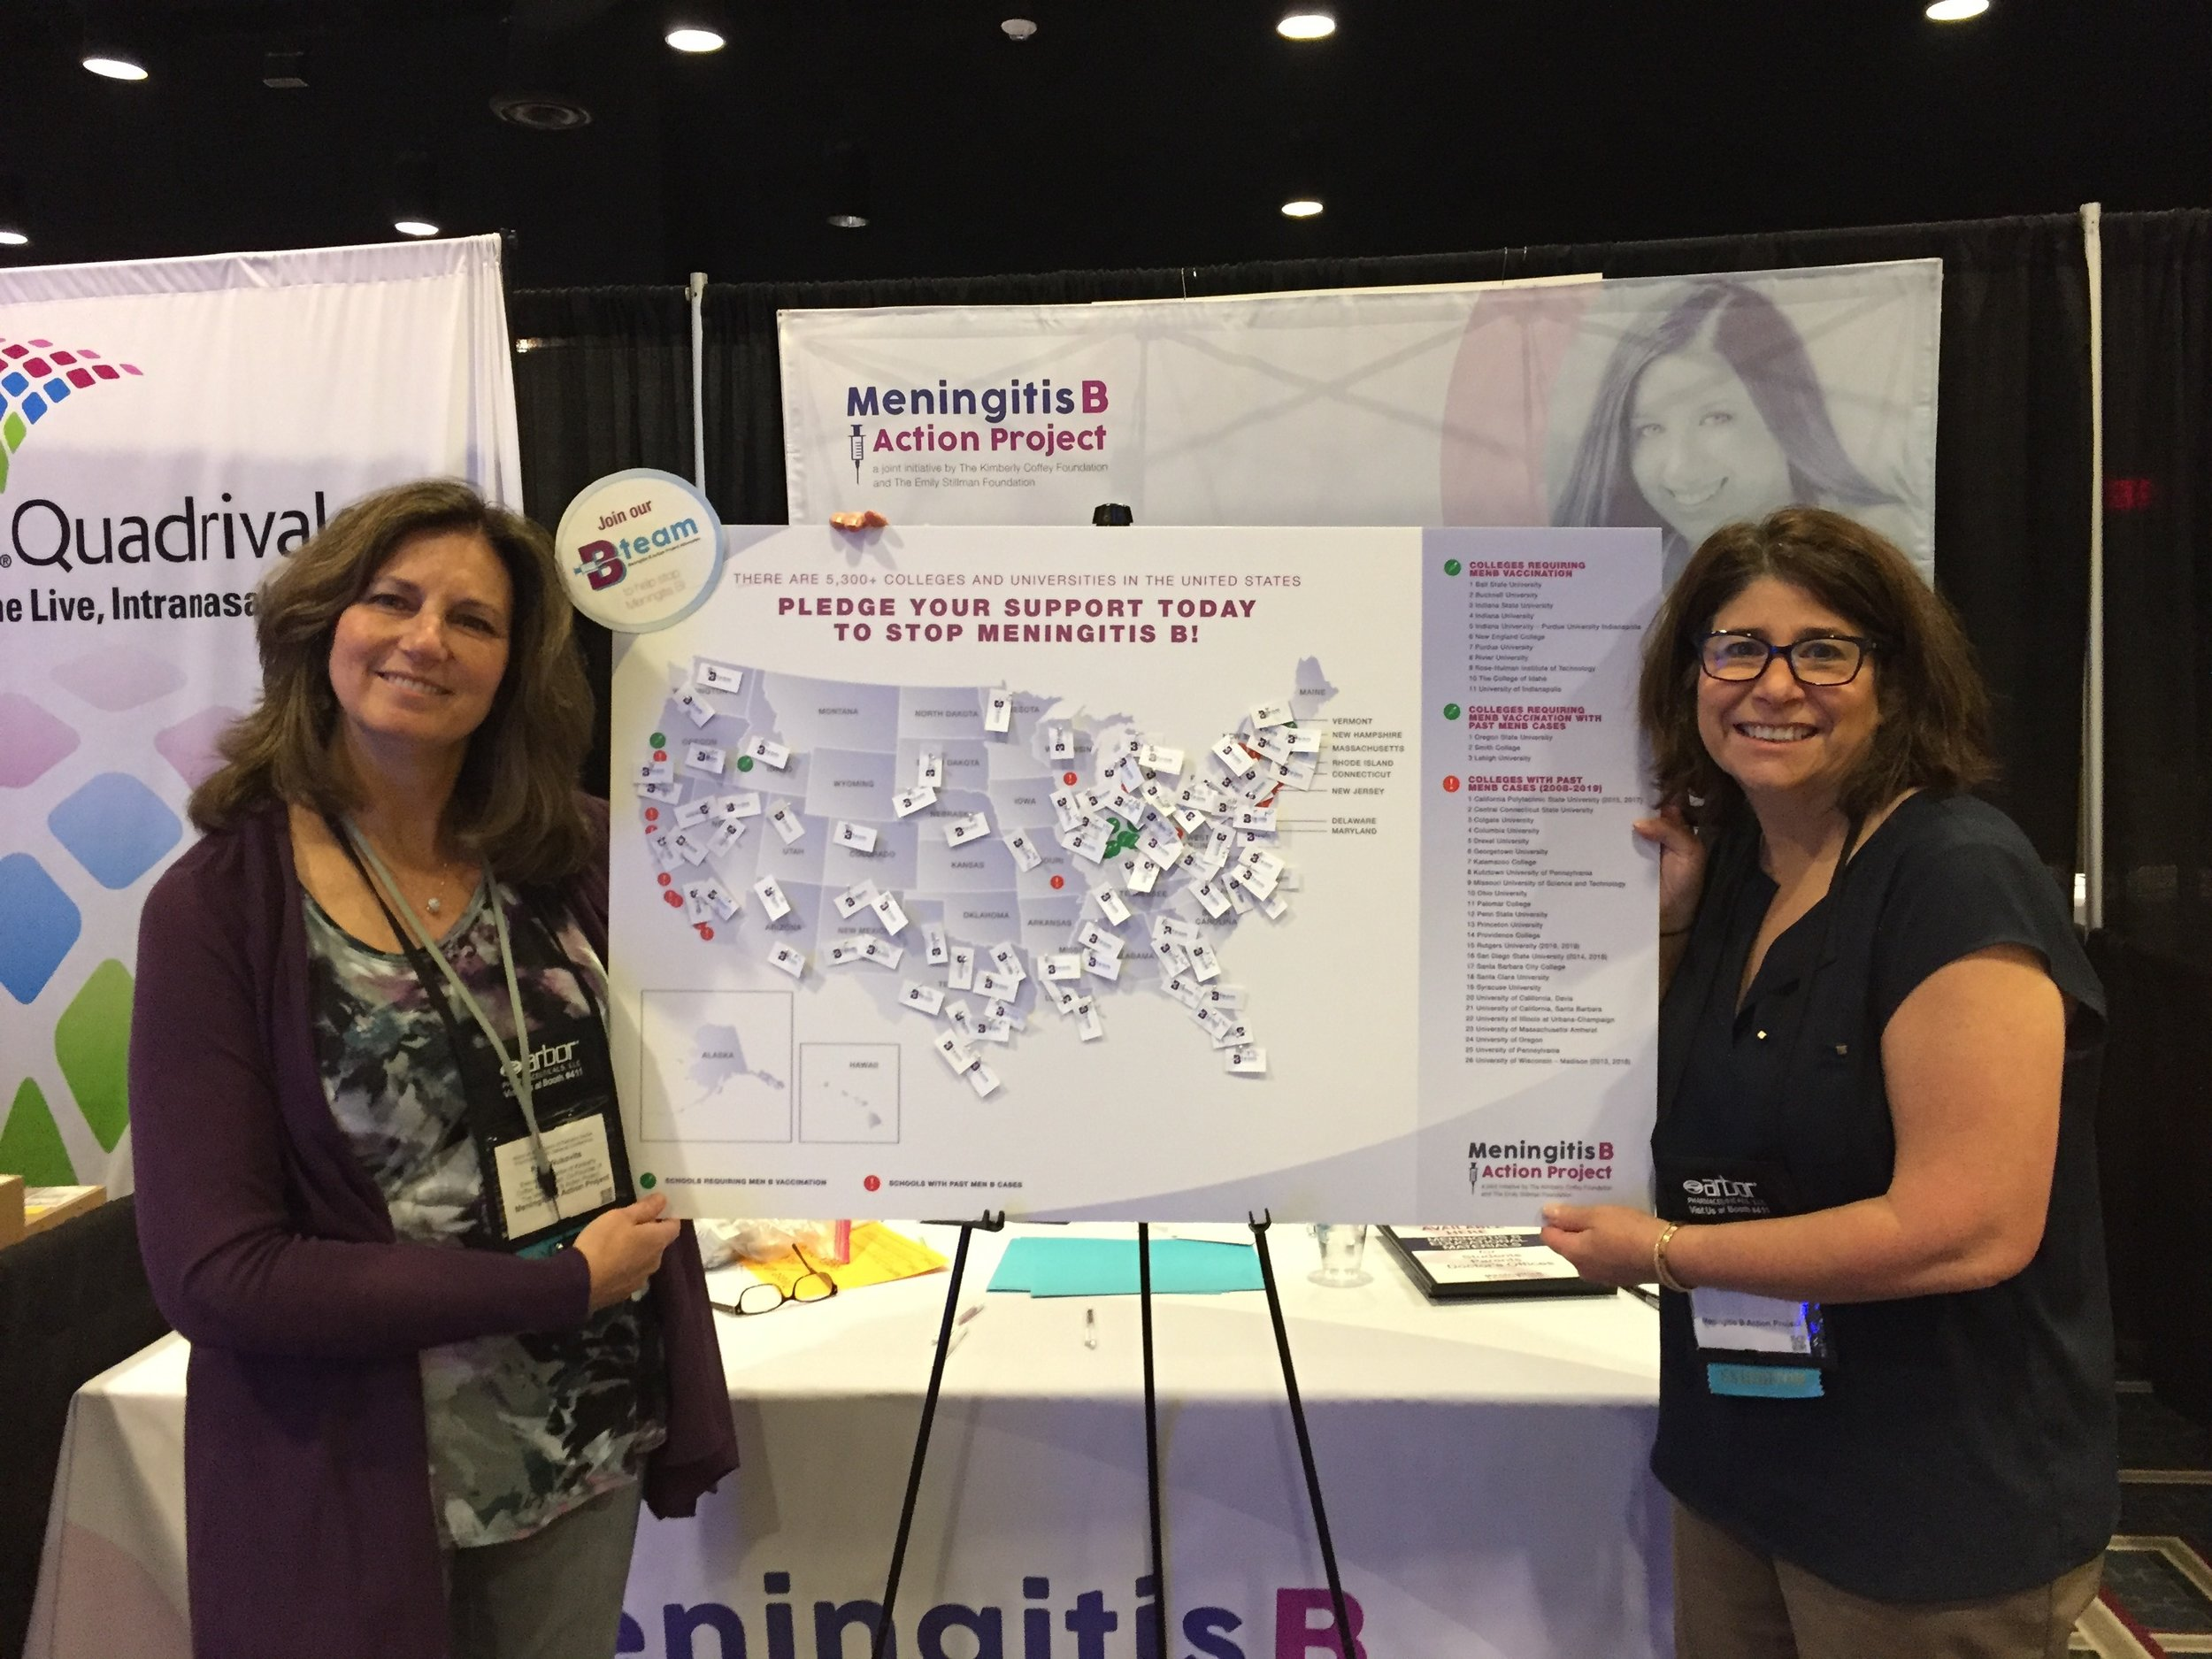 Patti and Alicia at National Association of Pediatric Nurse Practitioners (NAPNAP) Conference 2019.